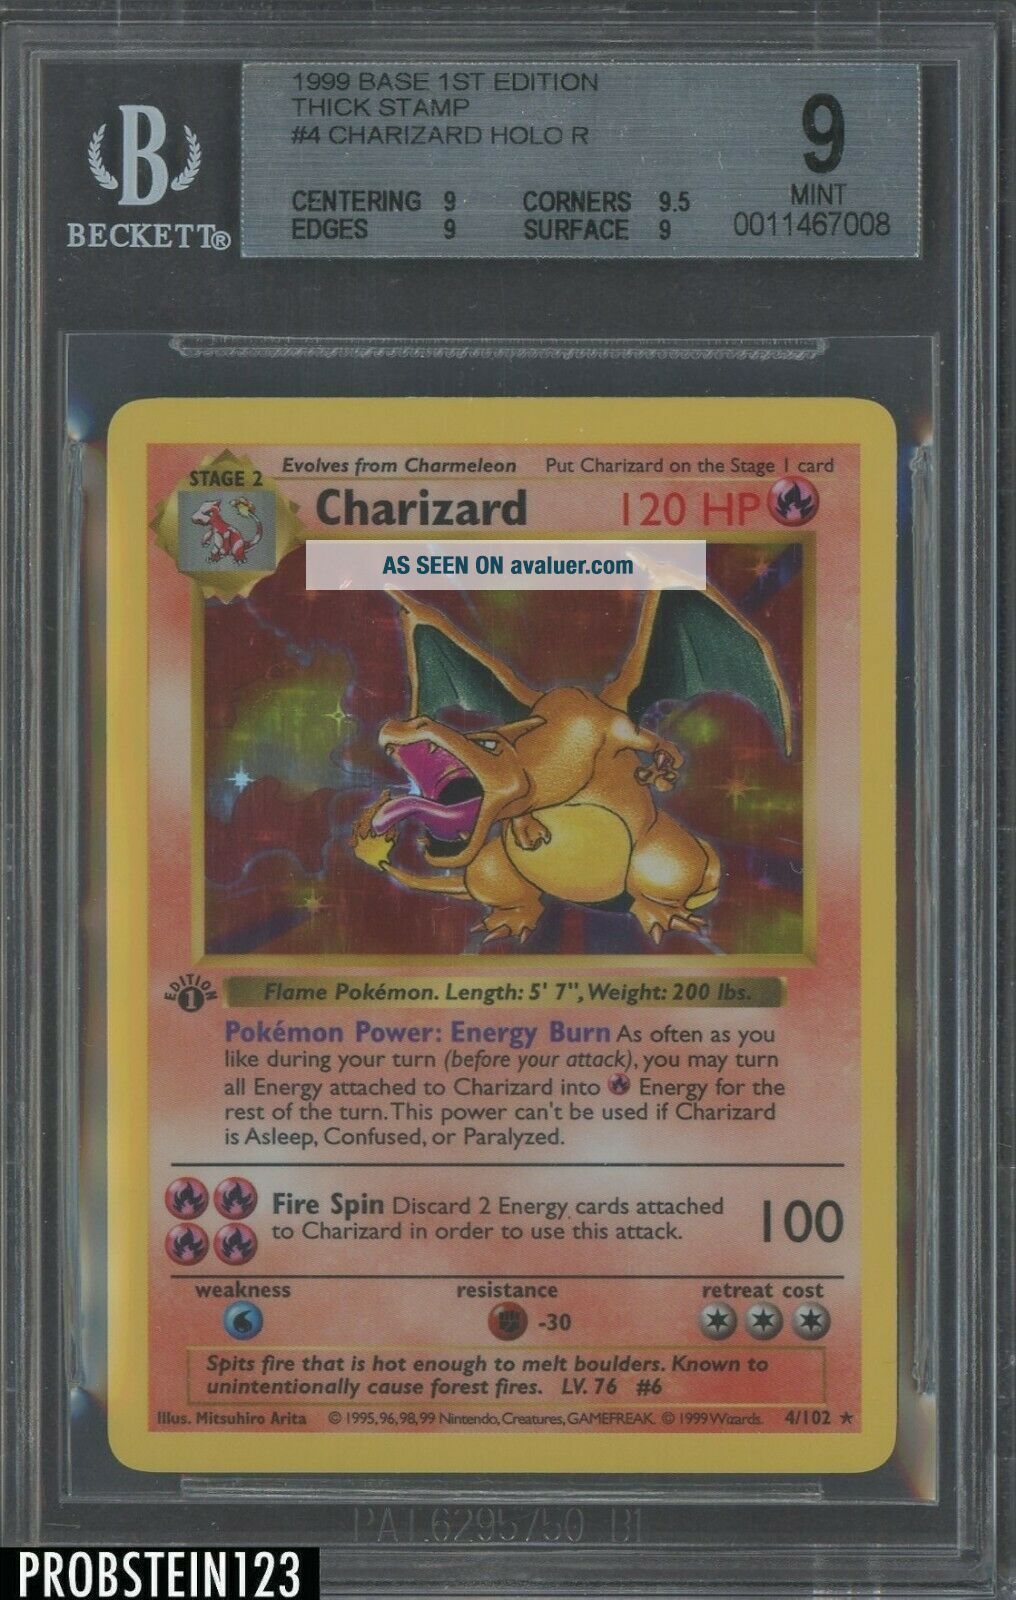 1999 Pokemon Base 1st Edition Shadowless Thick Stamp 4 Holo Charizard BGS 9